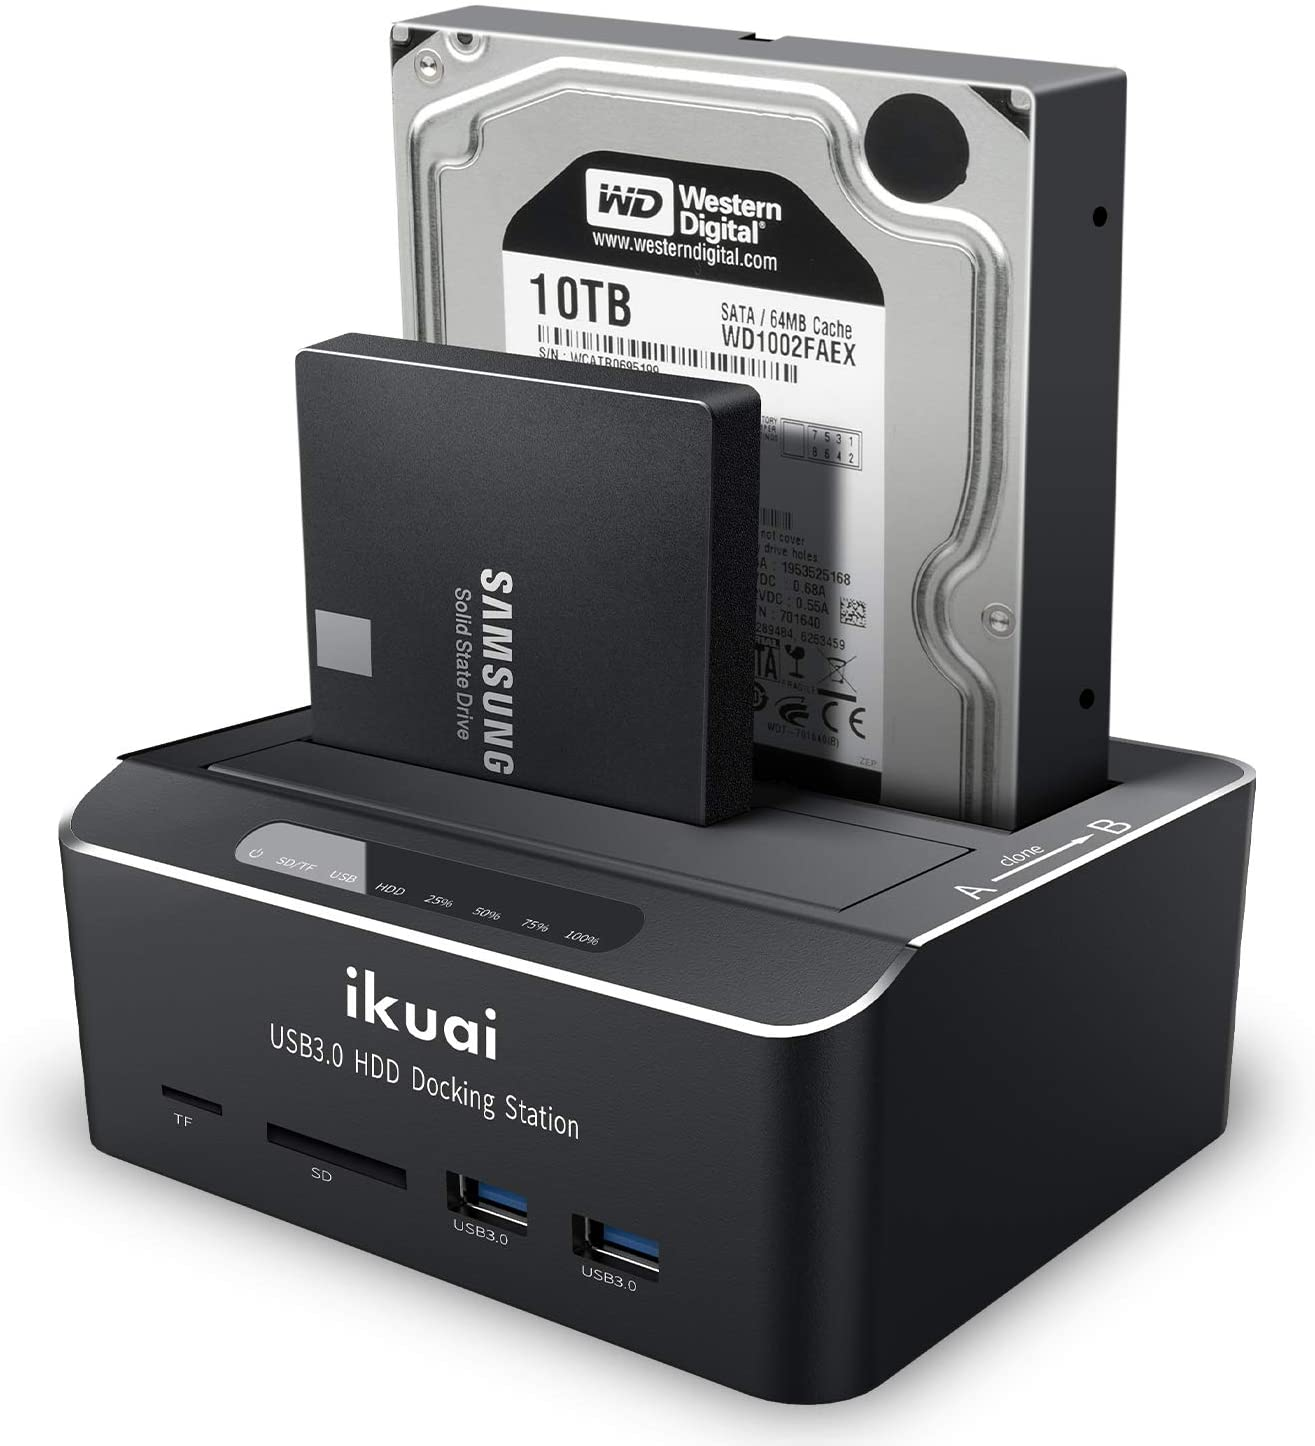 """ikuai SATA to USB 3.0 Dual Bay Hard Drive Dock for 2.5"""" and 3.5"""" SATA HDD SSD with SD TF Card Reader 2 USB 3.0 Ports and Offline Clone Function External Hard Drive Docking Station (UASP Supported)"""